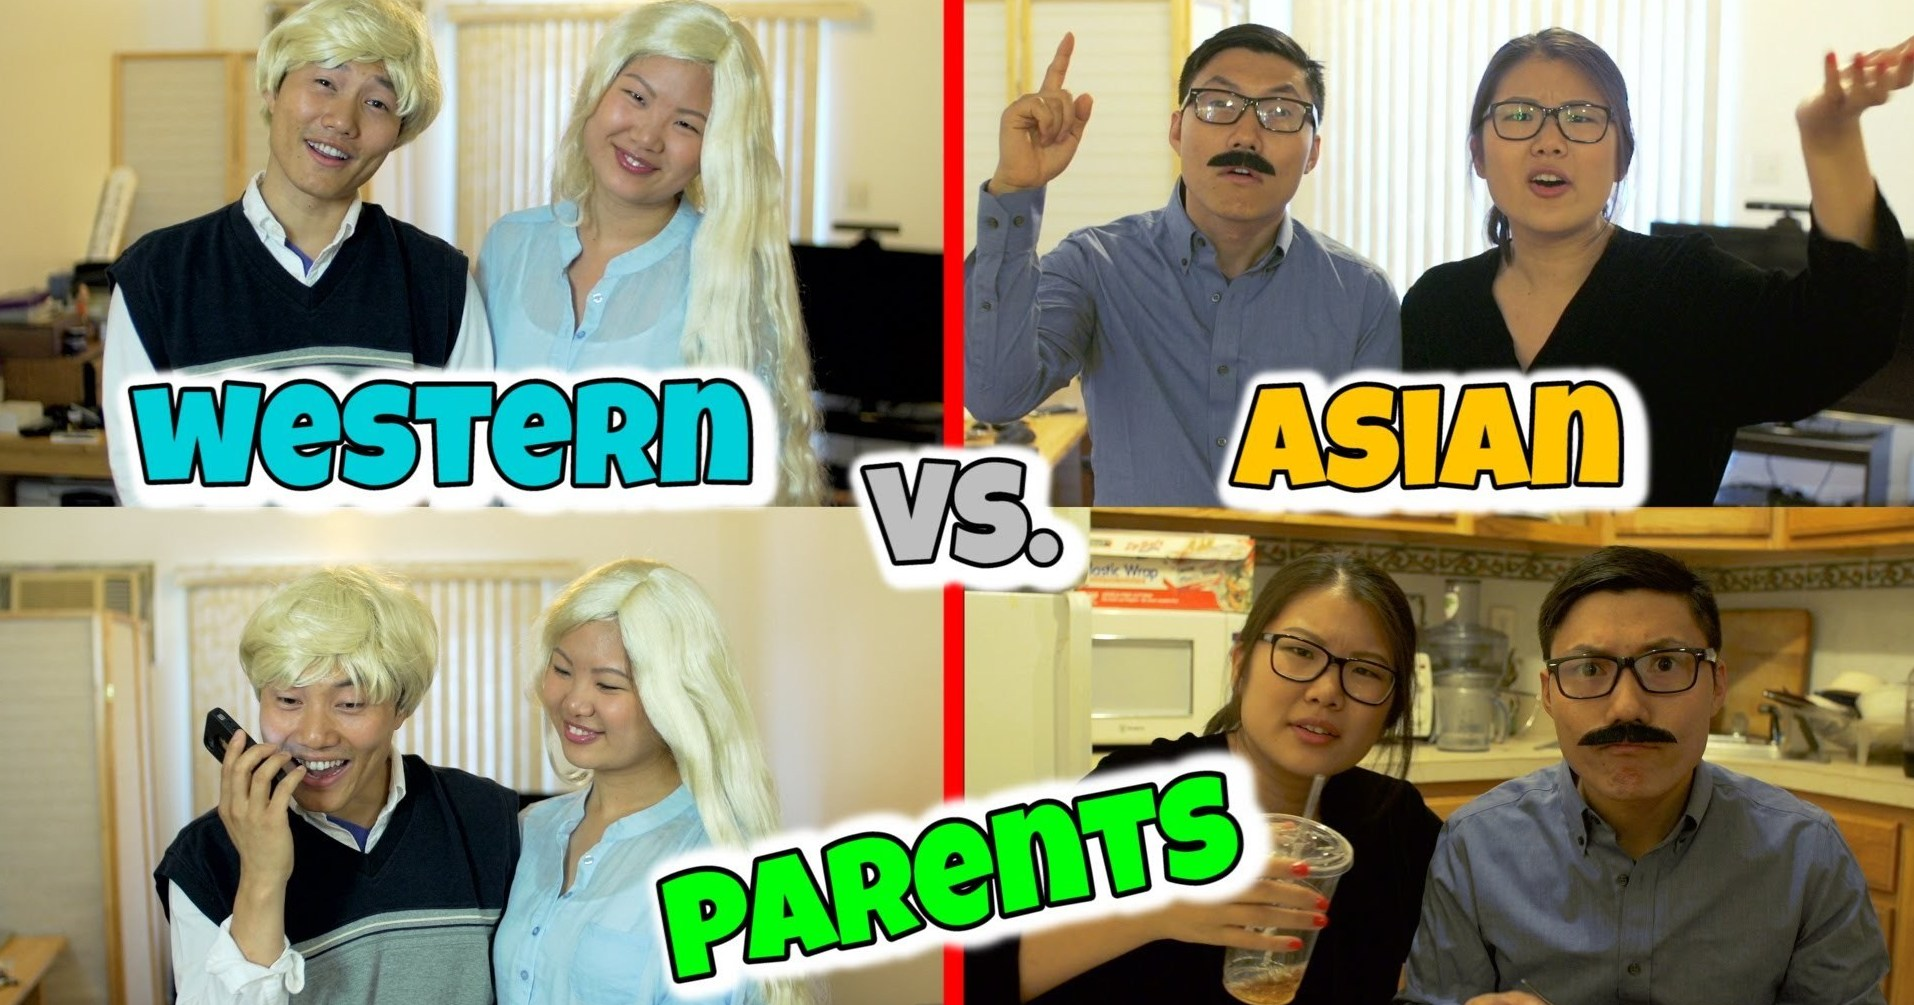 Asian parenting style